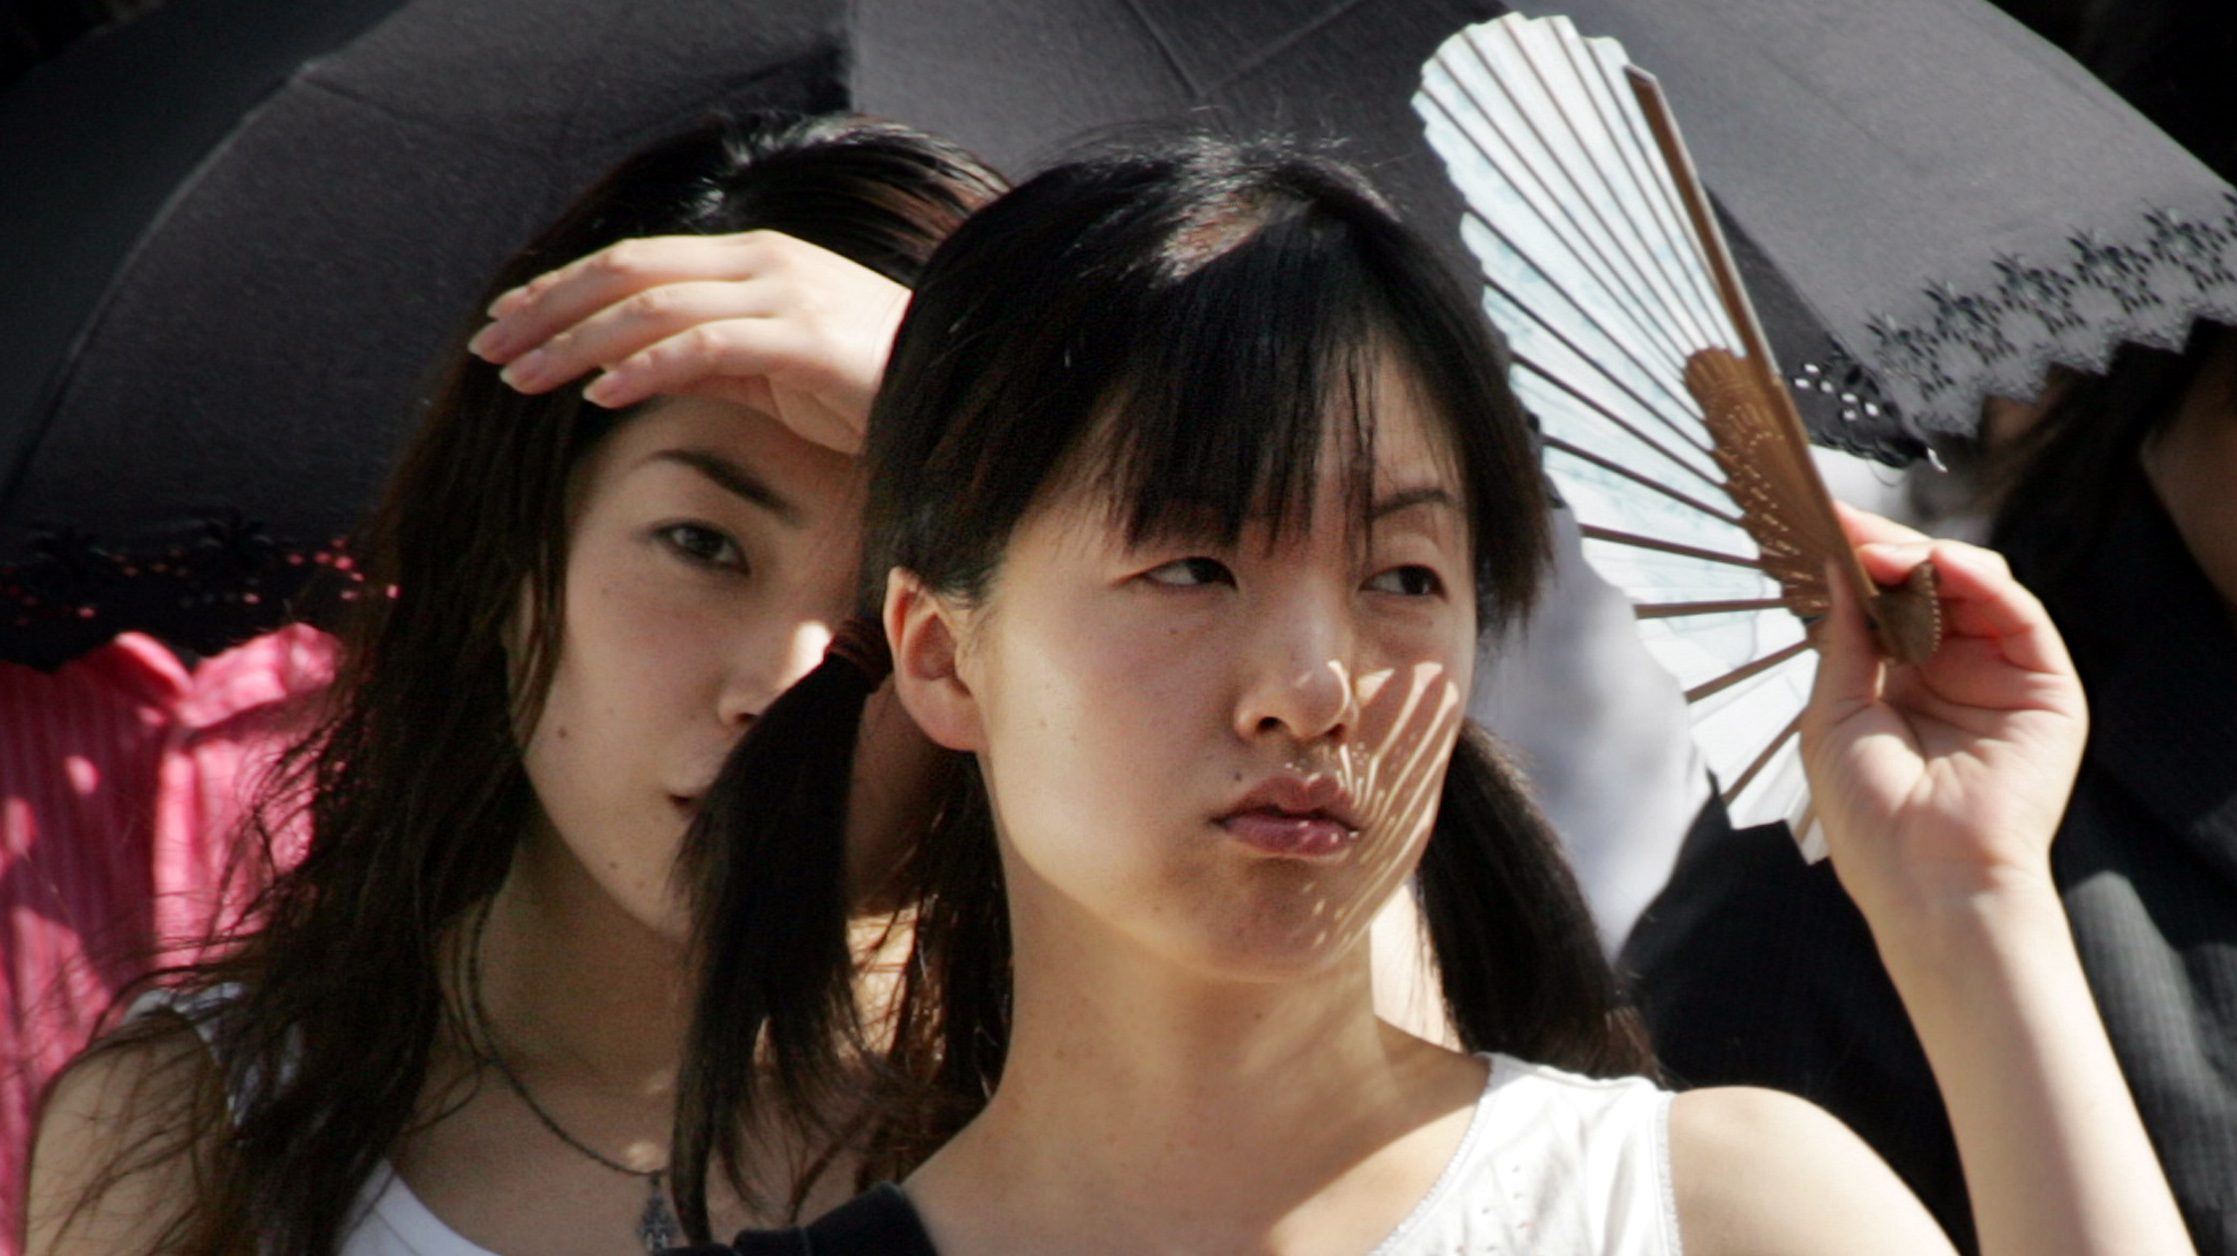 Japanese women shield themselves from the sun on a Tokyo street